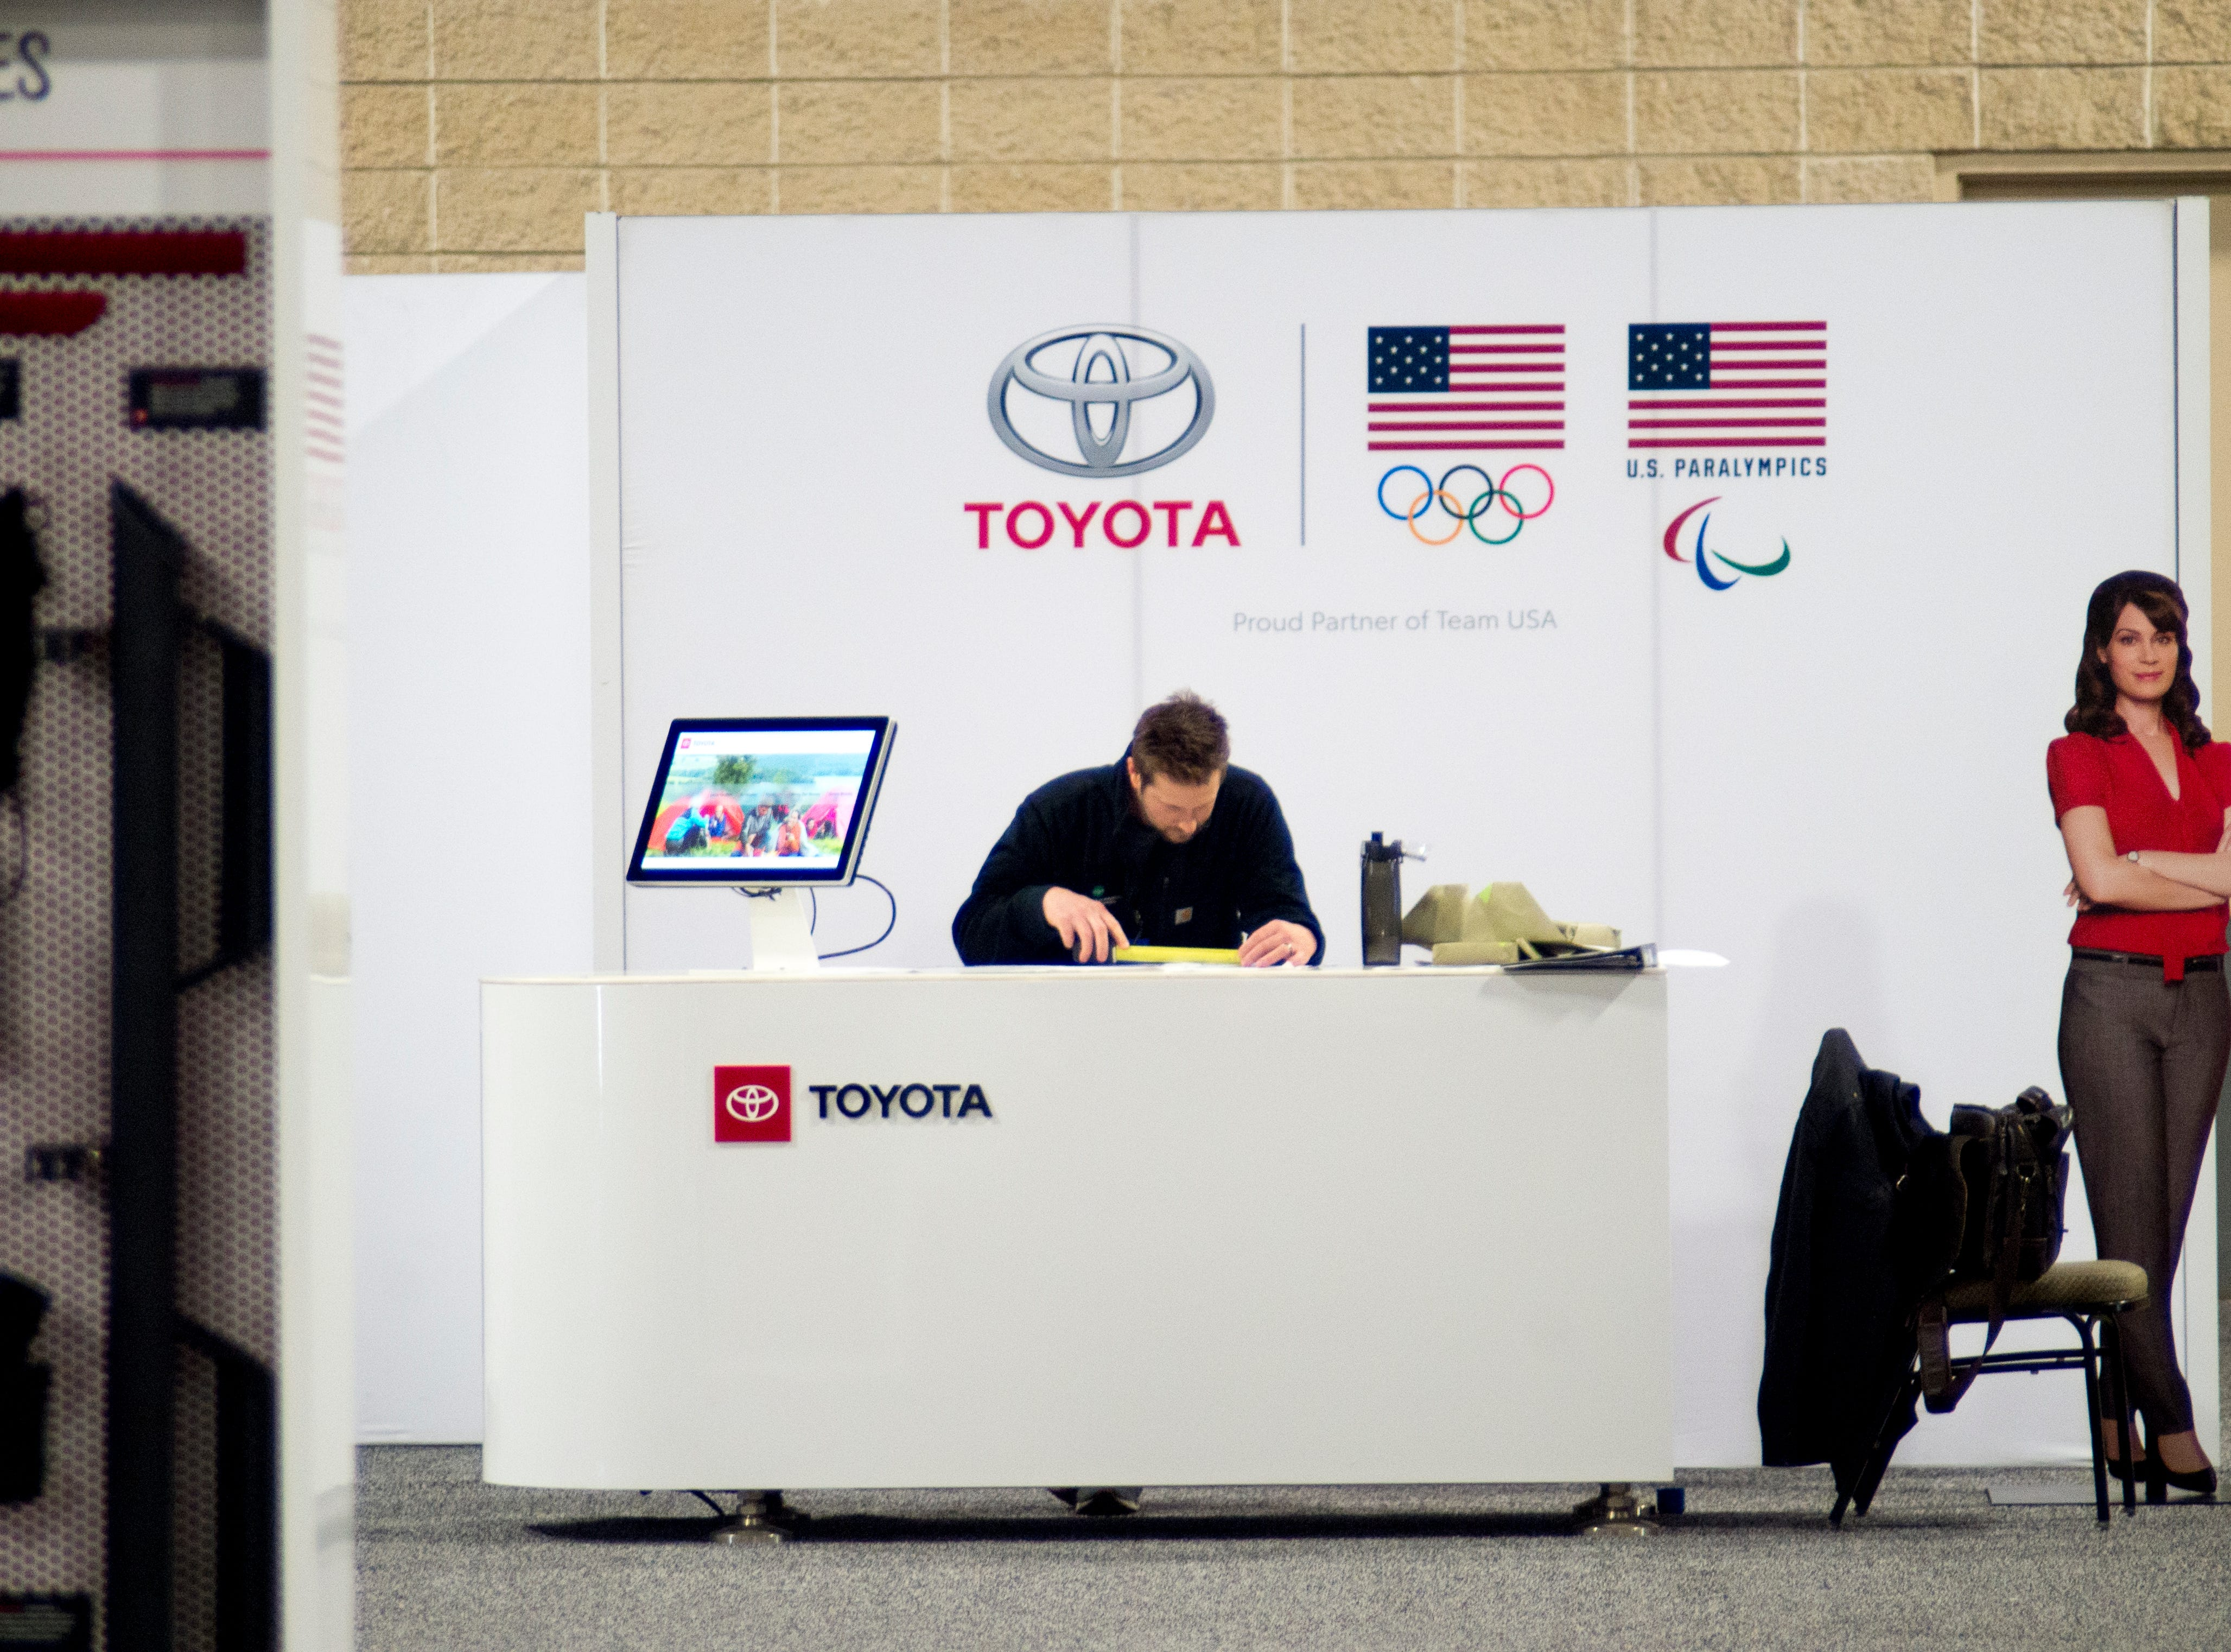 A worker looks at a floor plan for the Toyota booth at the Knox News Auto Show in the Knoxville Convention Center in Knoxville, Tennessee on Wednesday, February 20, 2019.